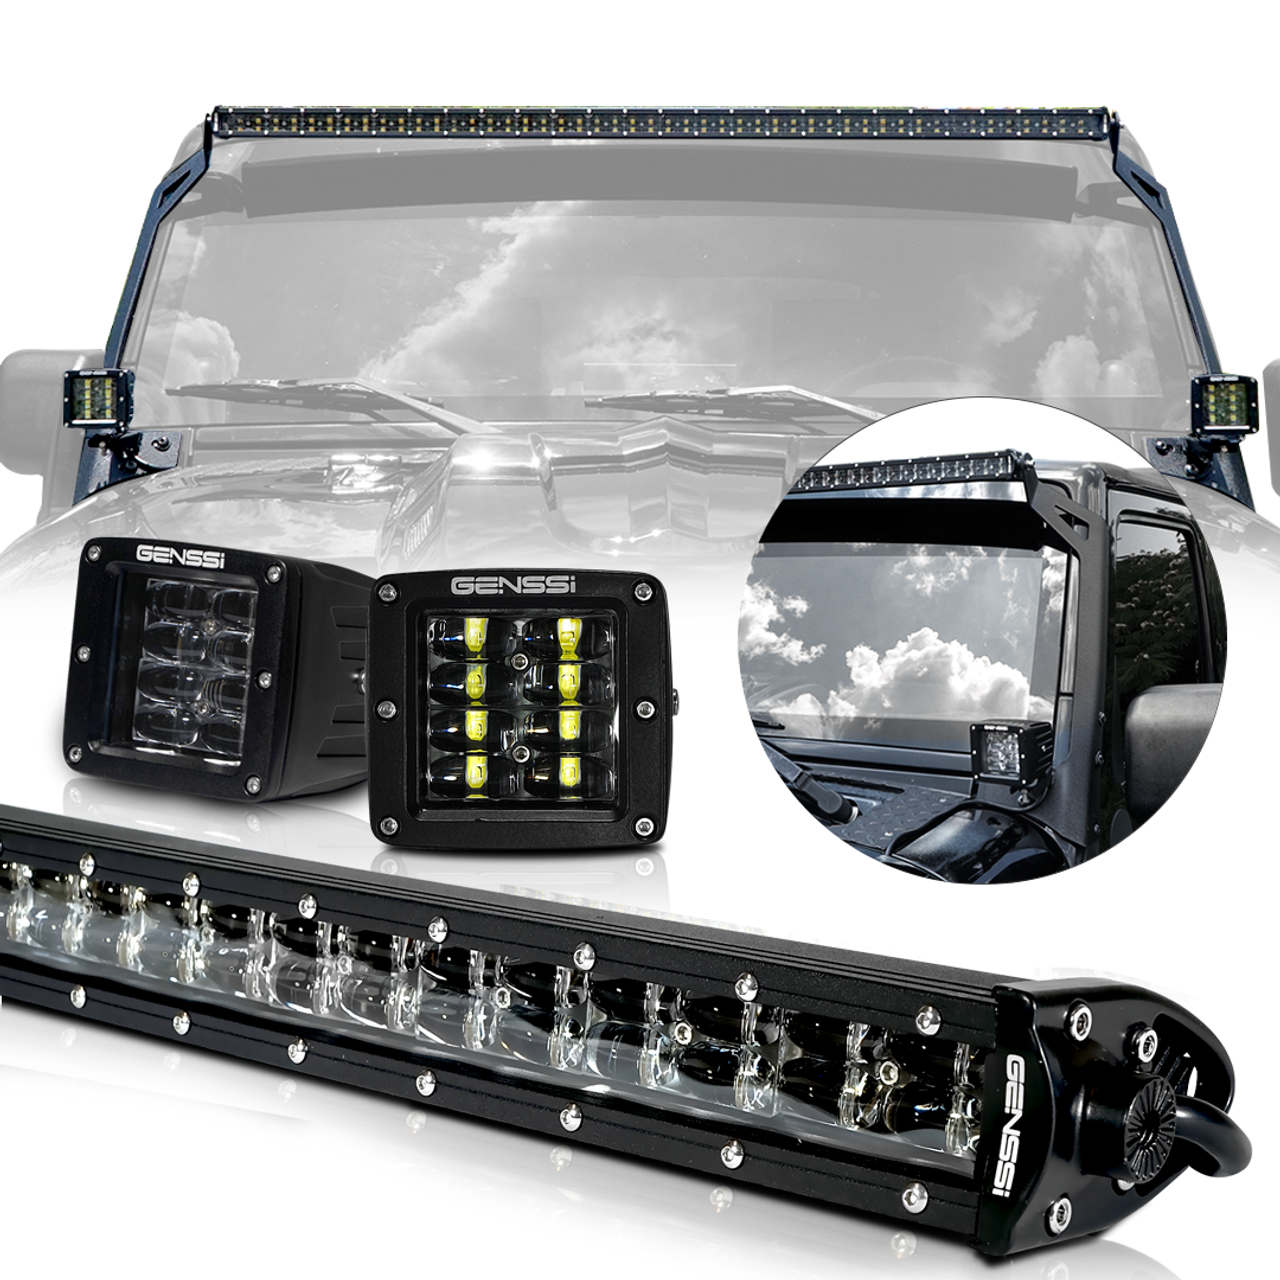 Led Light Bar Combo Kit With Aux Lights Bracket Wiring Harness Jeep Jk Dual Battery For Wrangler